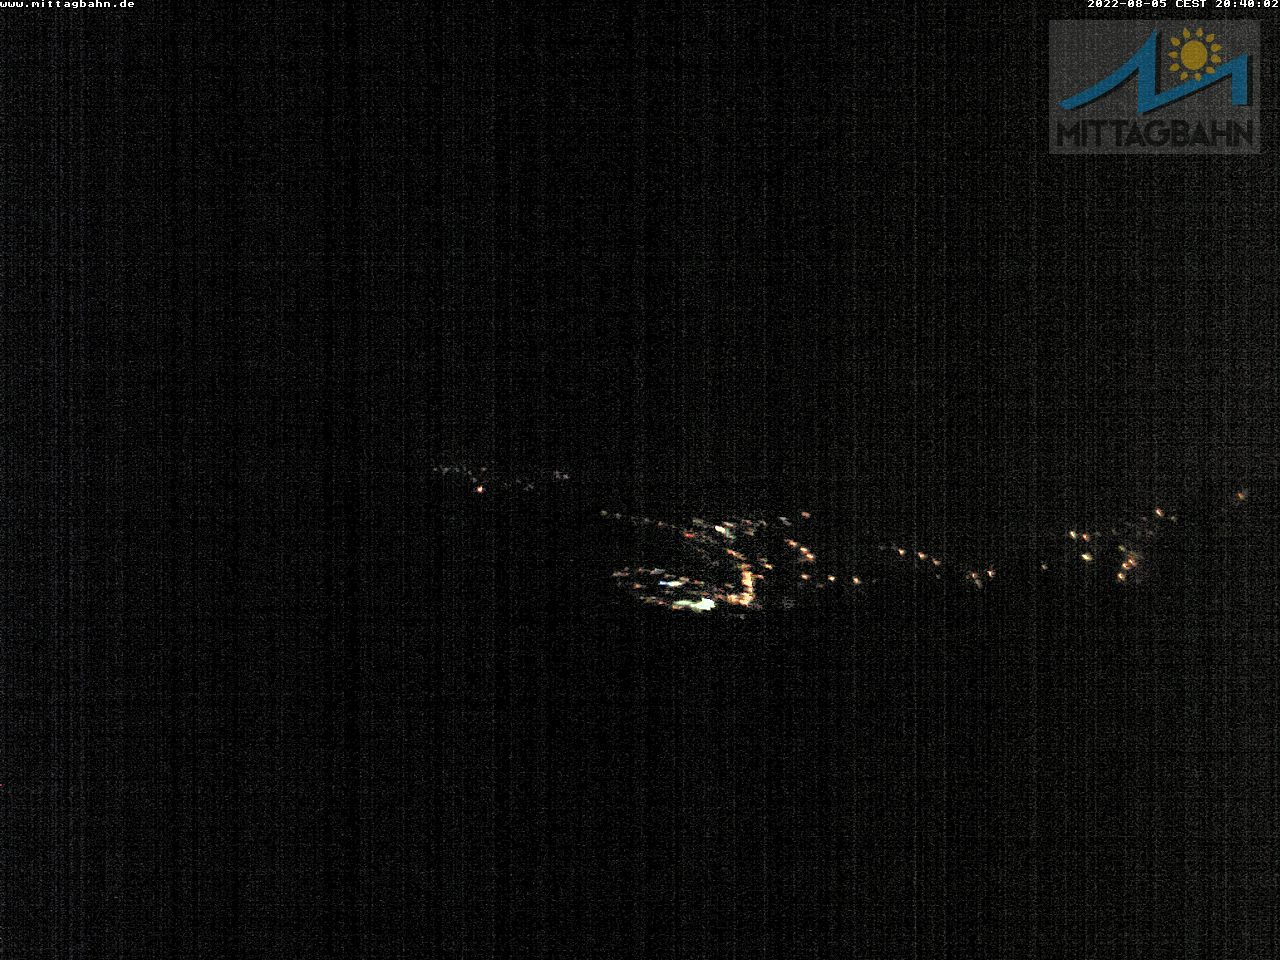 Webcam Ski Resort Immenstadt - Mittag cam 7 - Bavaria Alps - Allgäu